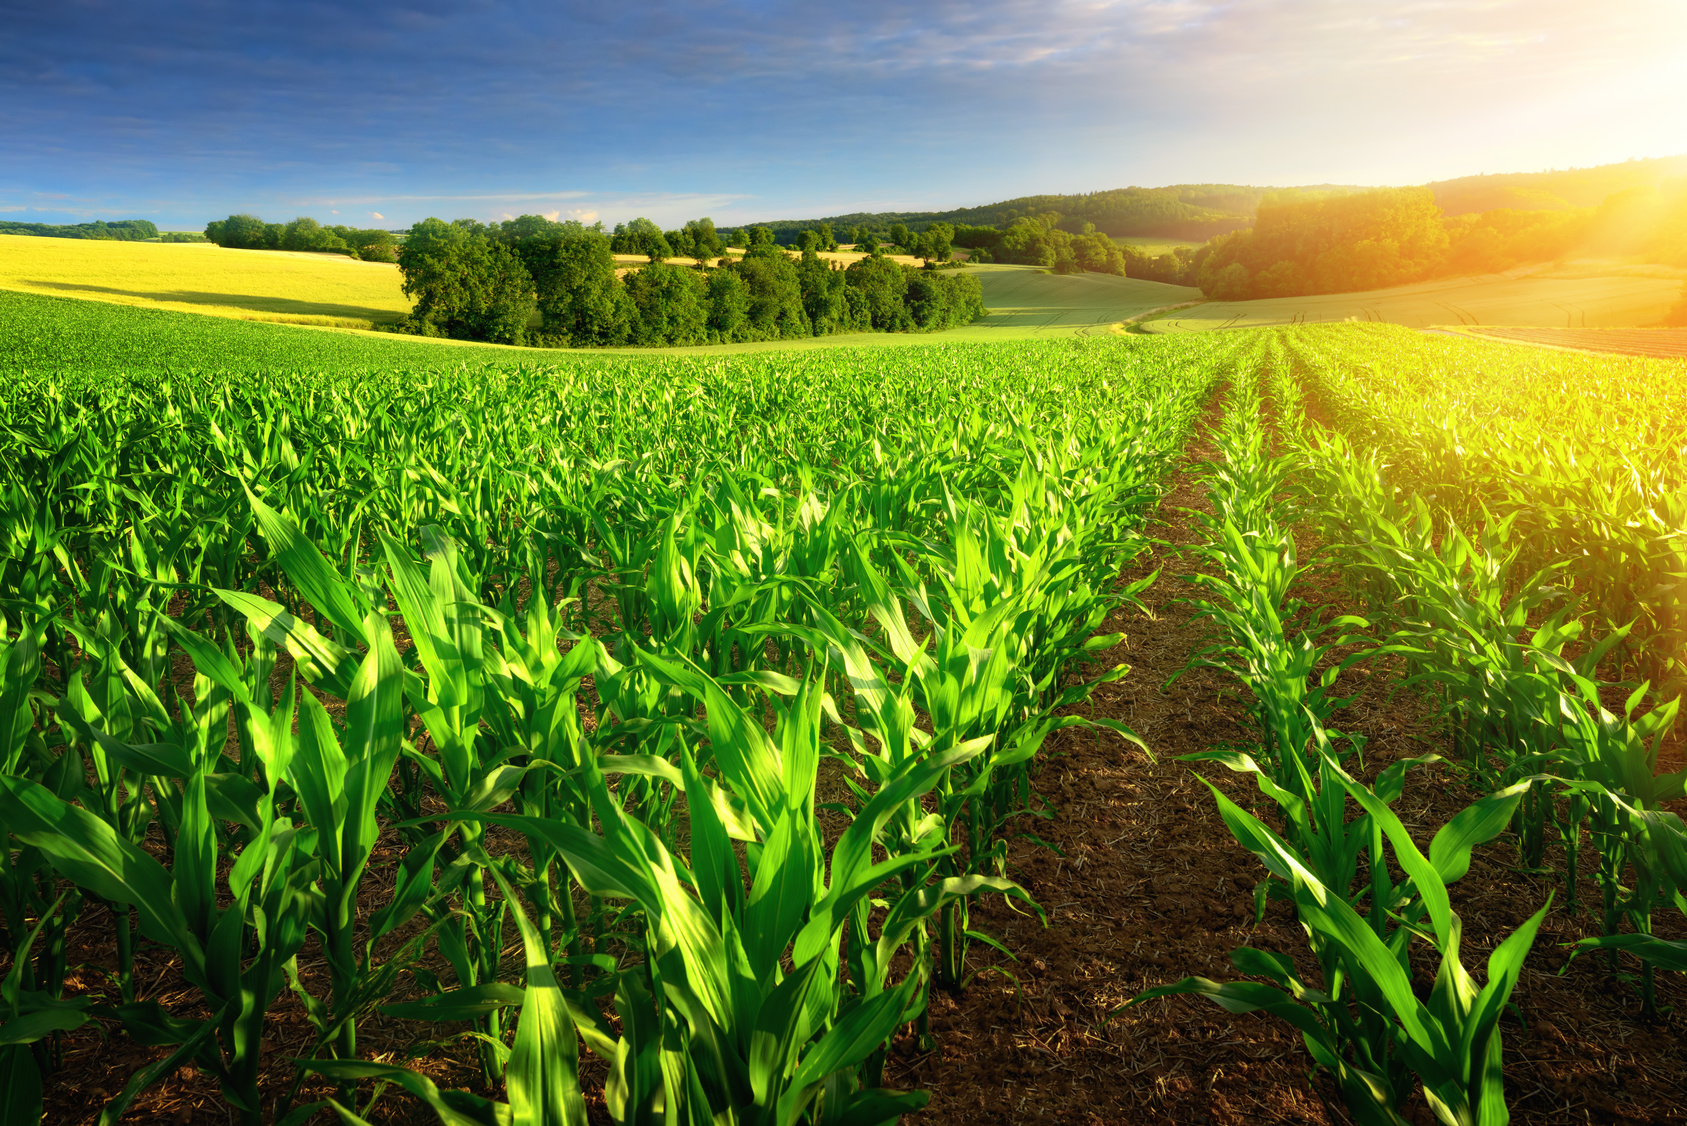 corn plants in rows in a field surrounded by landscape in rising sun